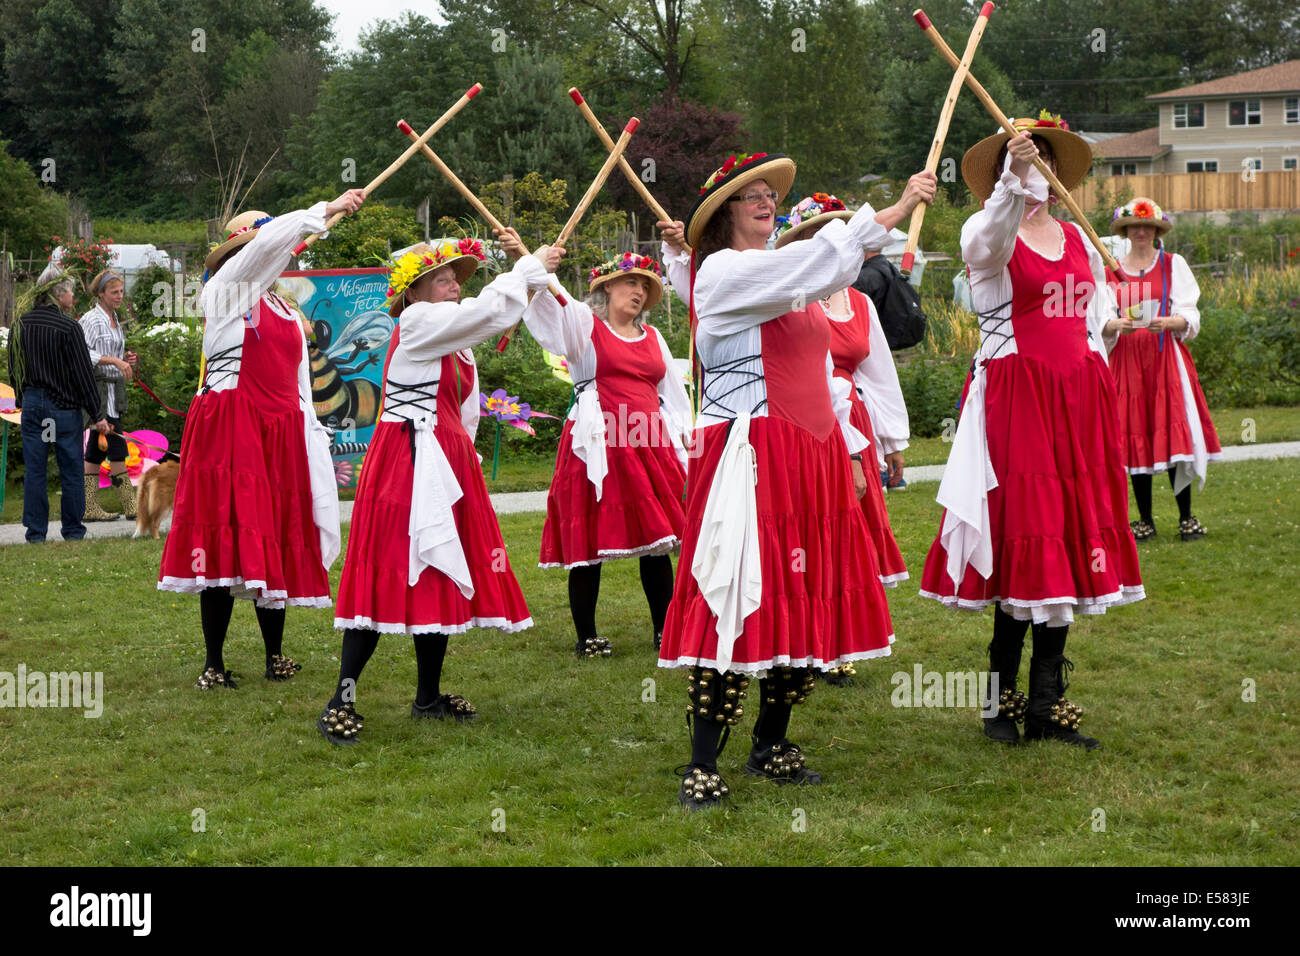 Tiddley Cove Morris Dancers of Vancouver perform at the Midsummer Fete in Port Coquitlam, BC. (Greater Vancouver) - Stock Image